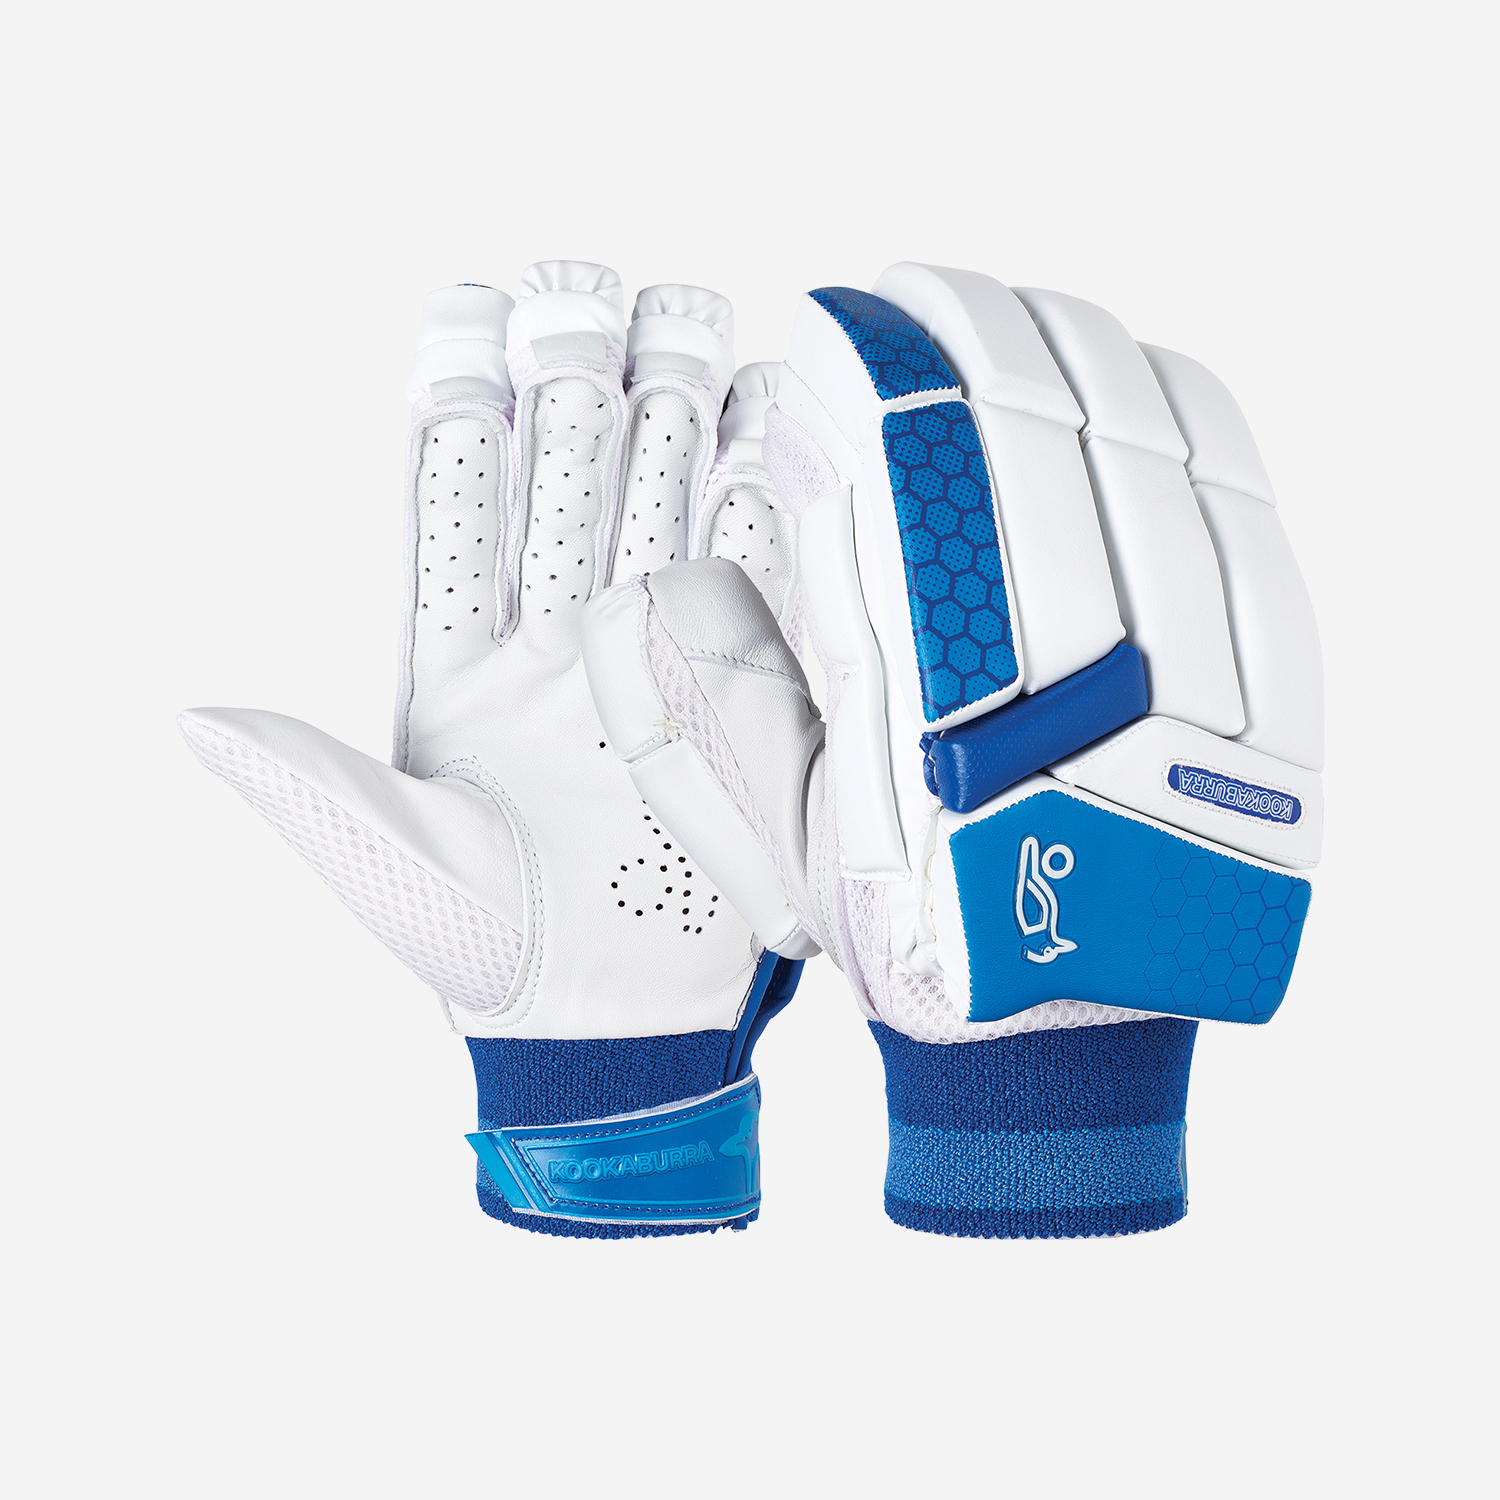 Pace Pro 3.0 Batting Gloves